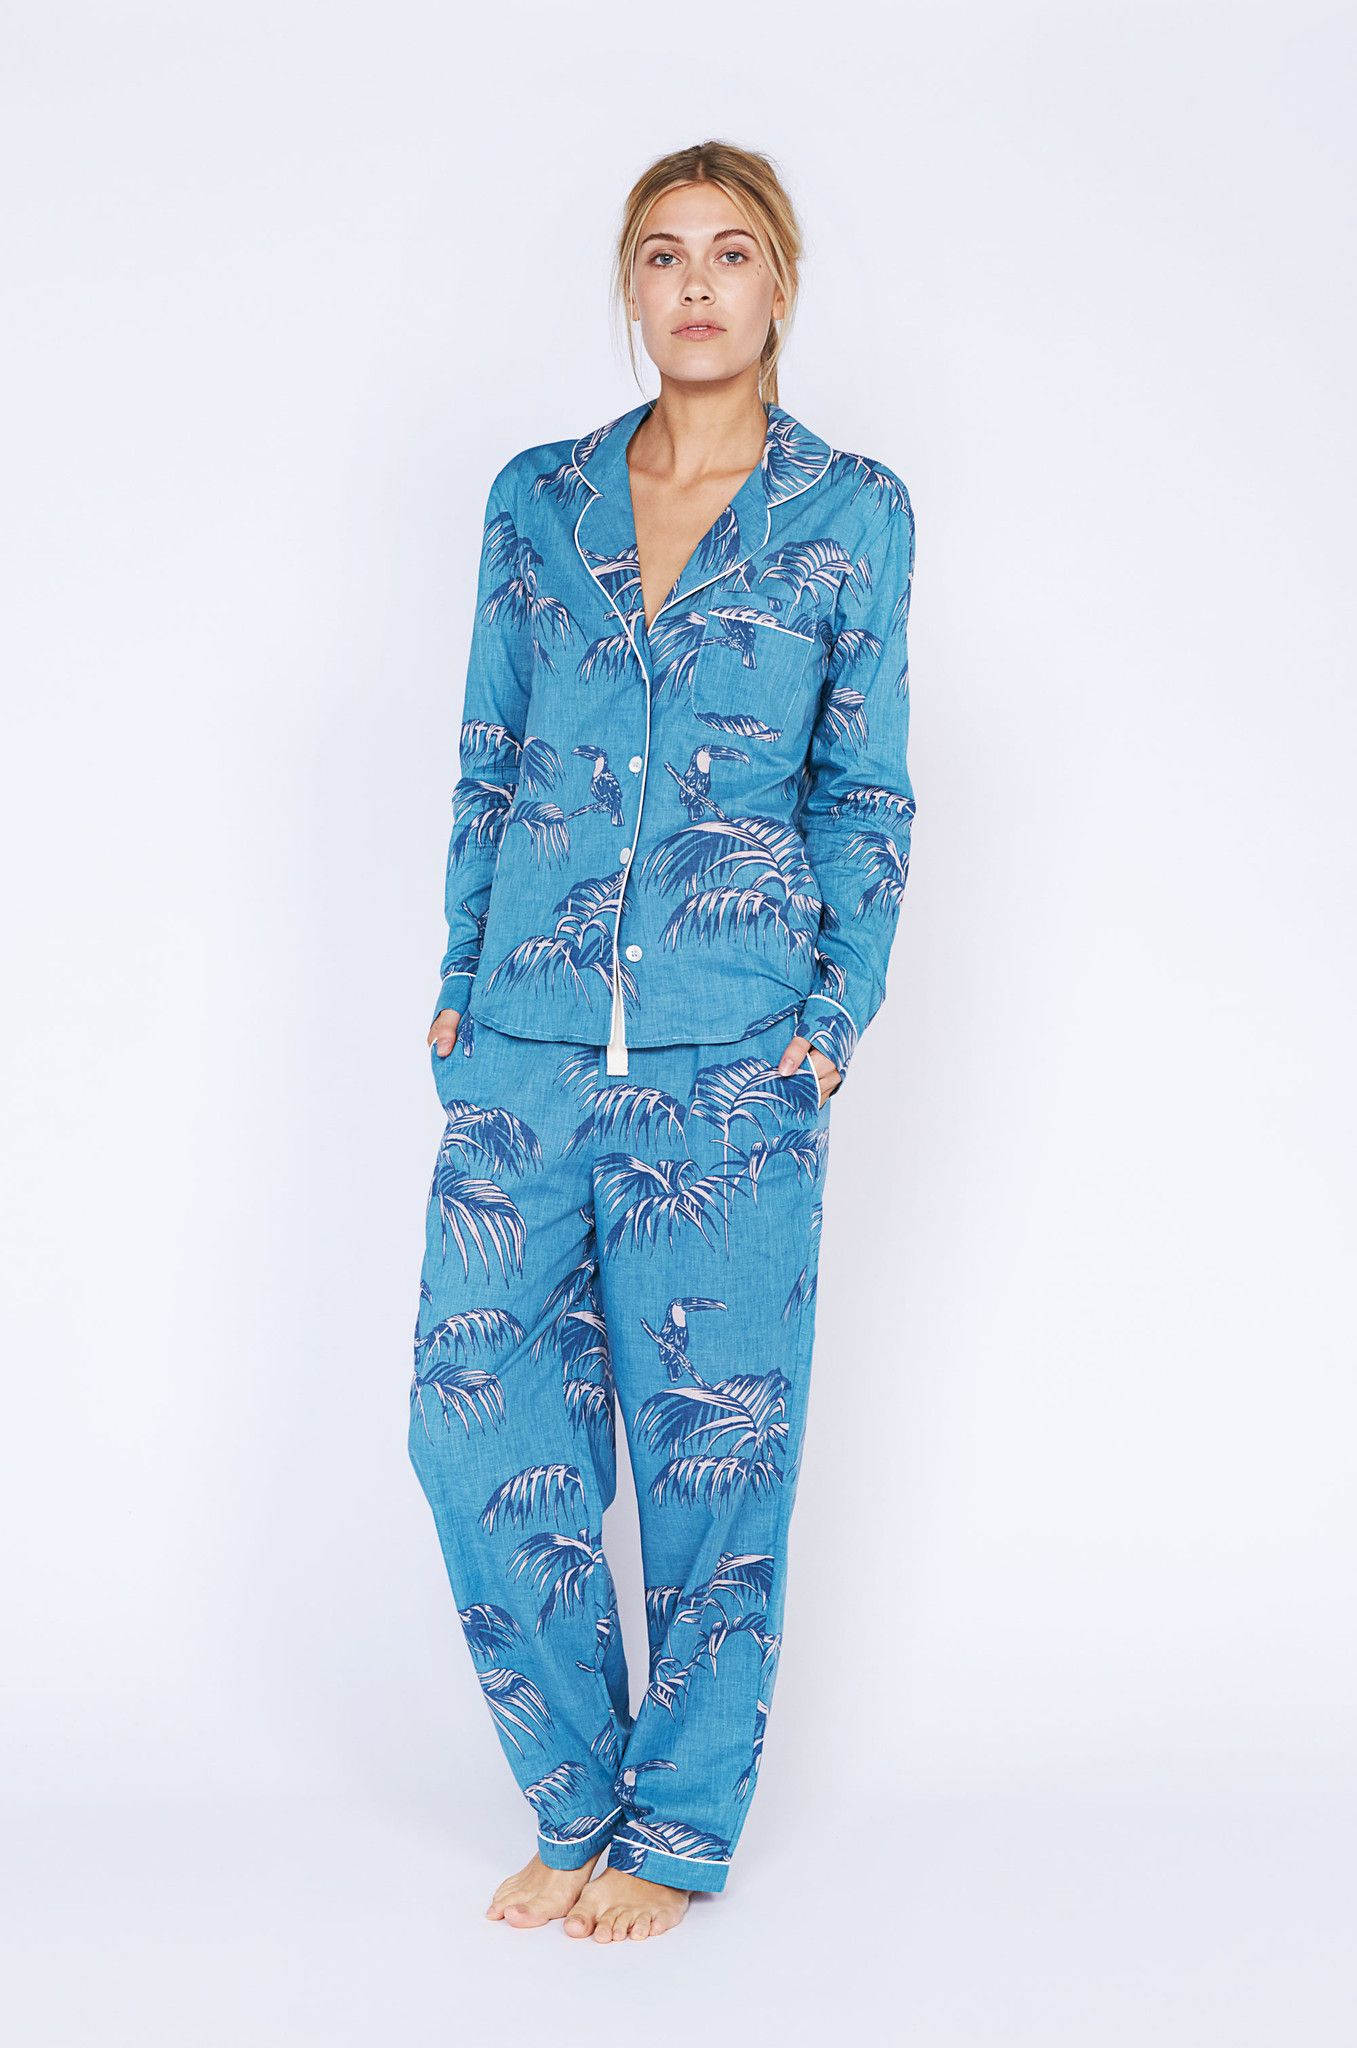 e8606e0bba A fabulous pair of printed cotton pyjamas from UK label